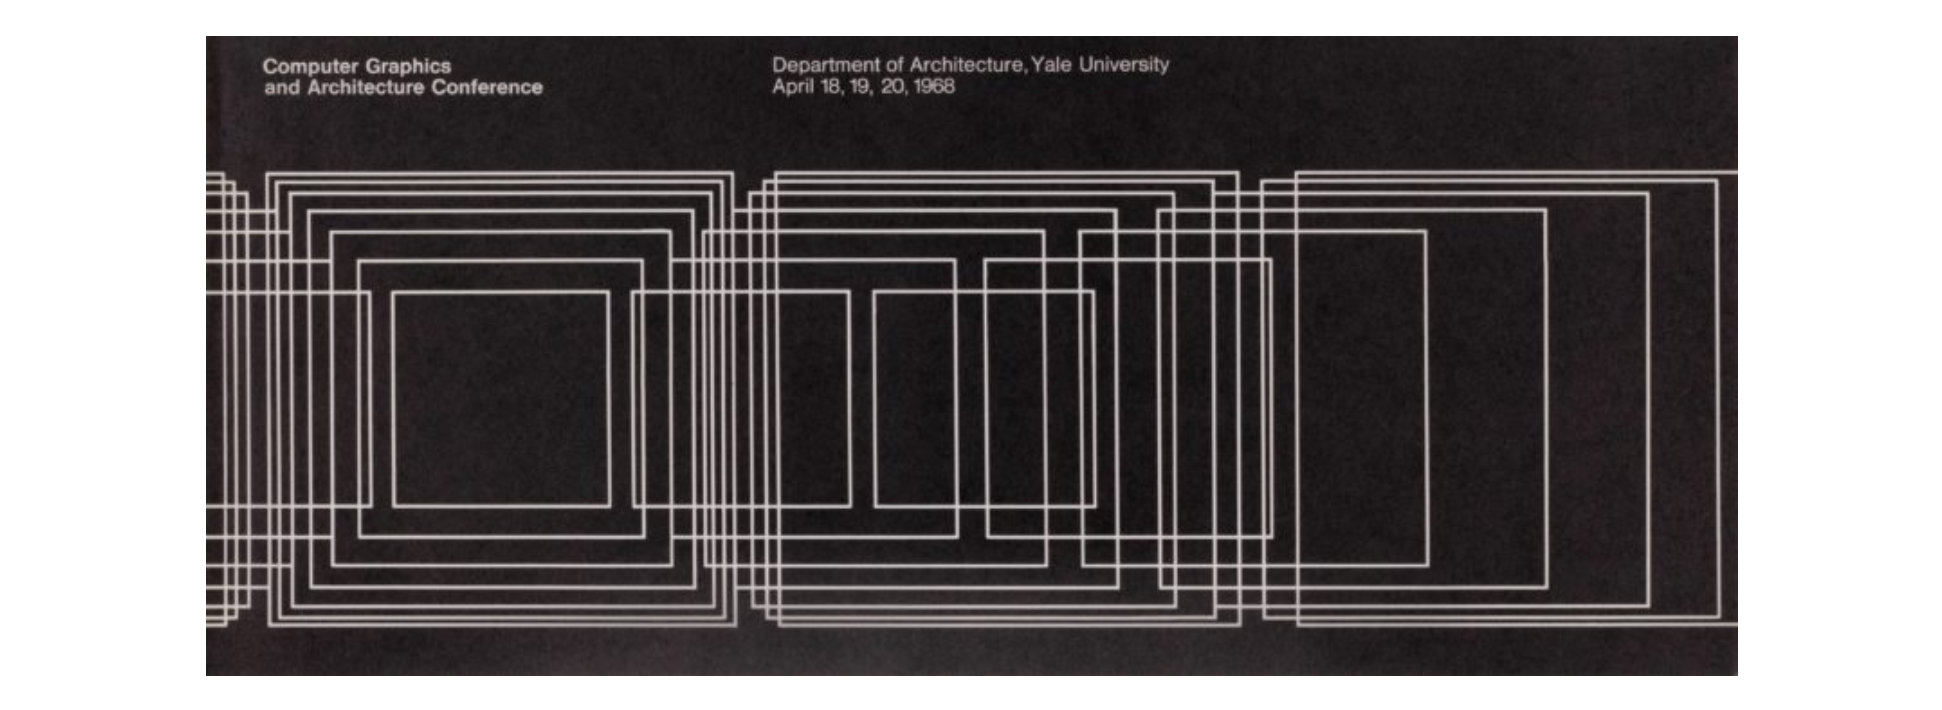 Aaron Marcus Computer Graphics and Architecture Conference poster, 1968